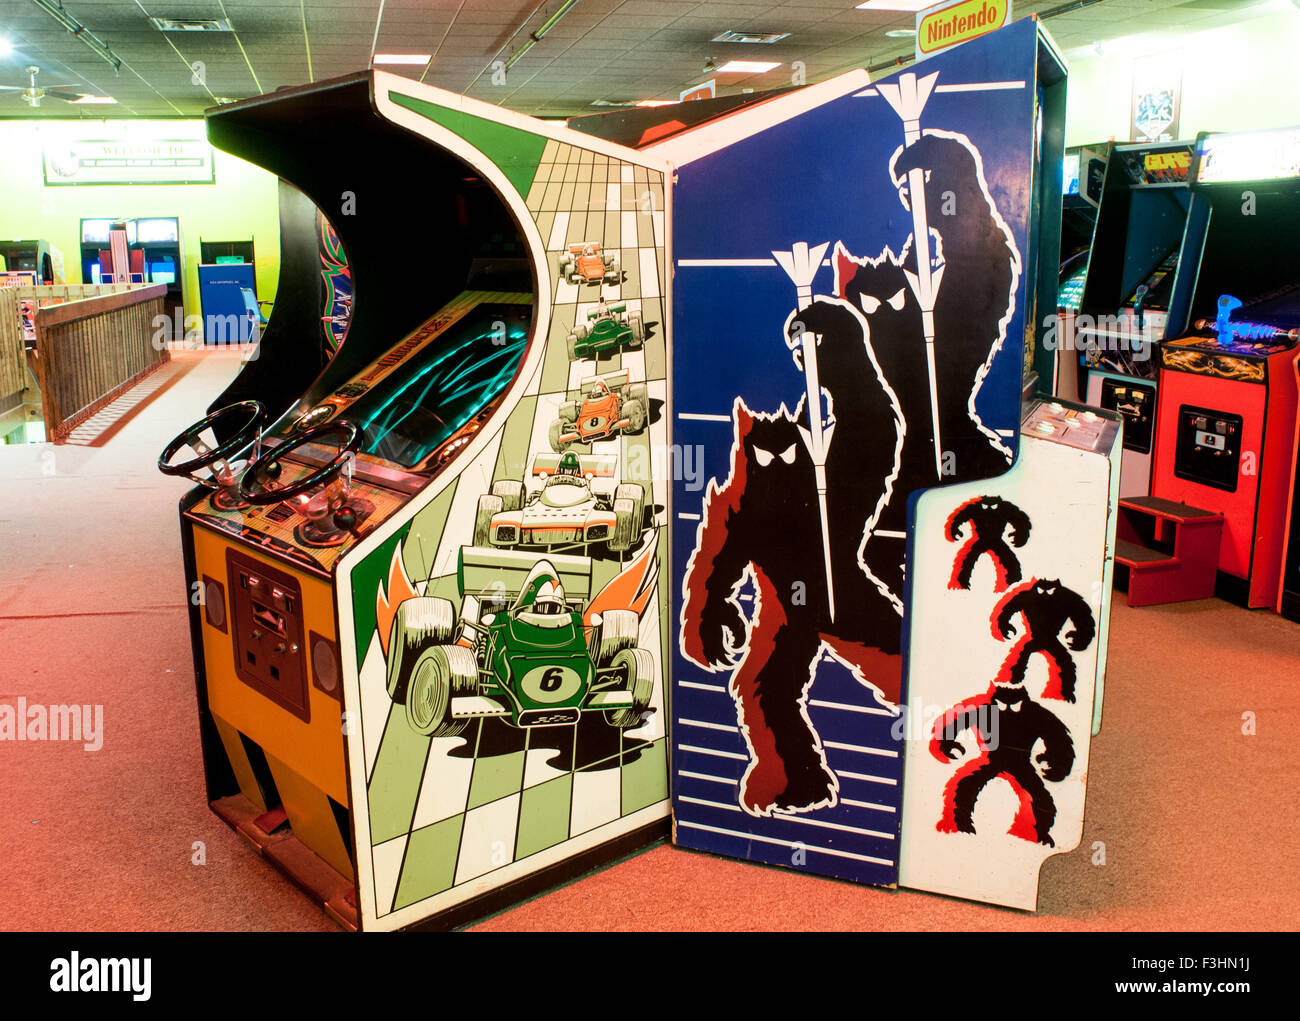 Video games inside the American Classic Arcade Museum in Laconia, New Hampshire, USA - Stock Image